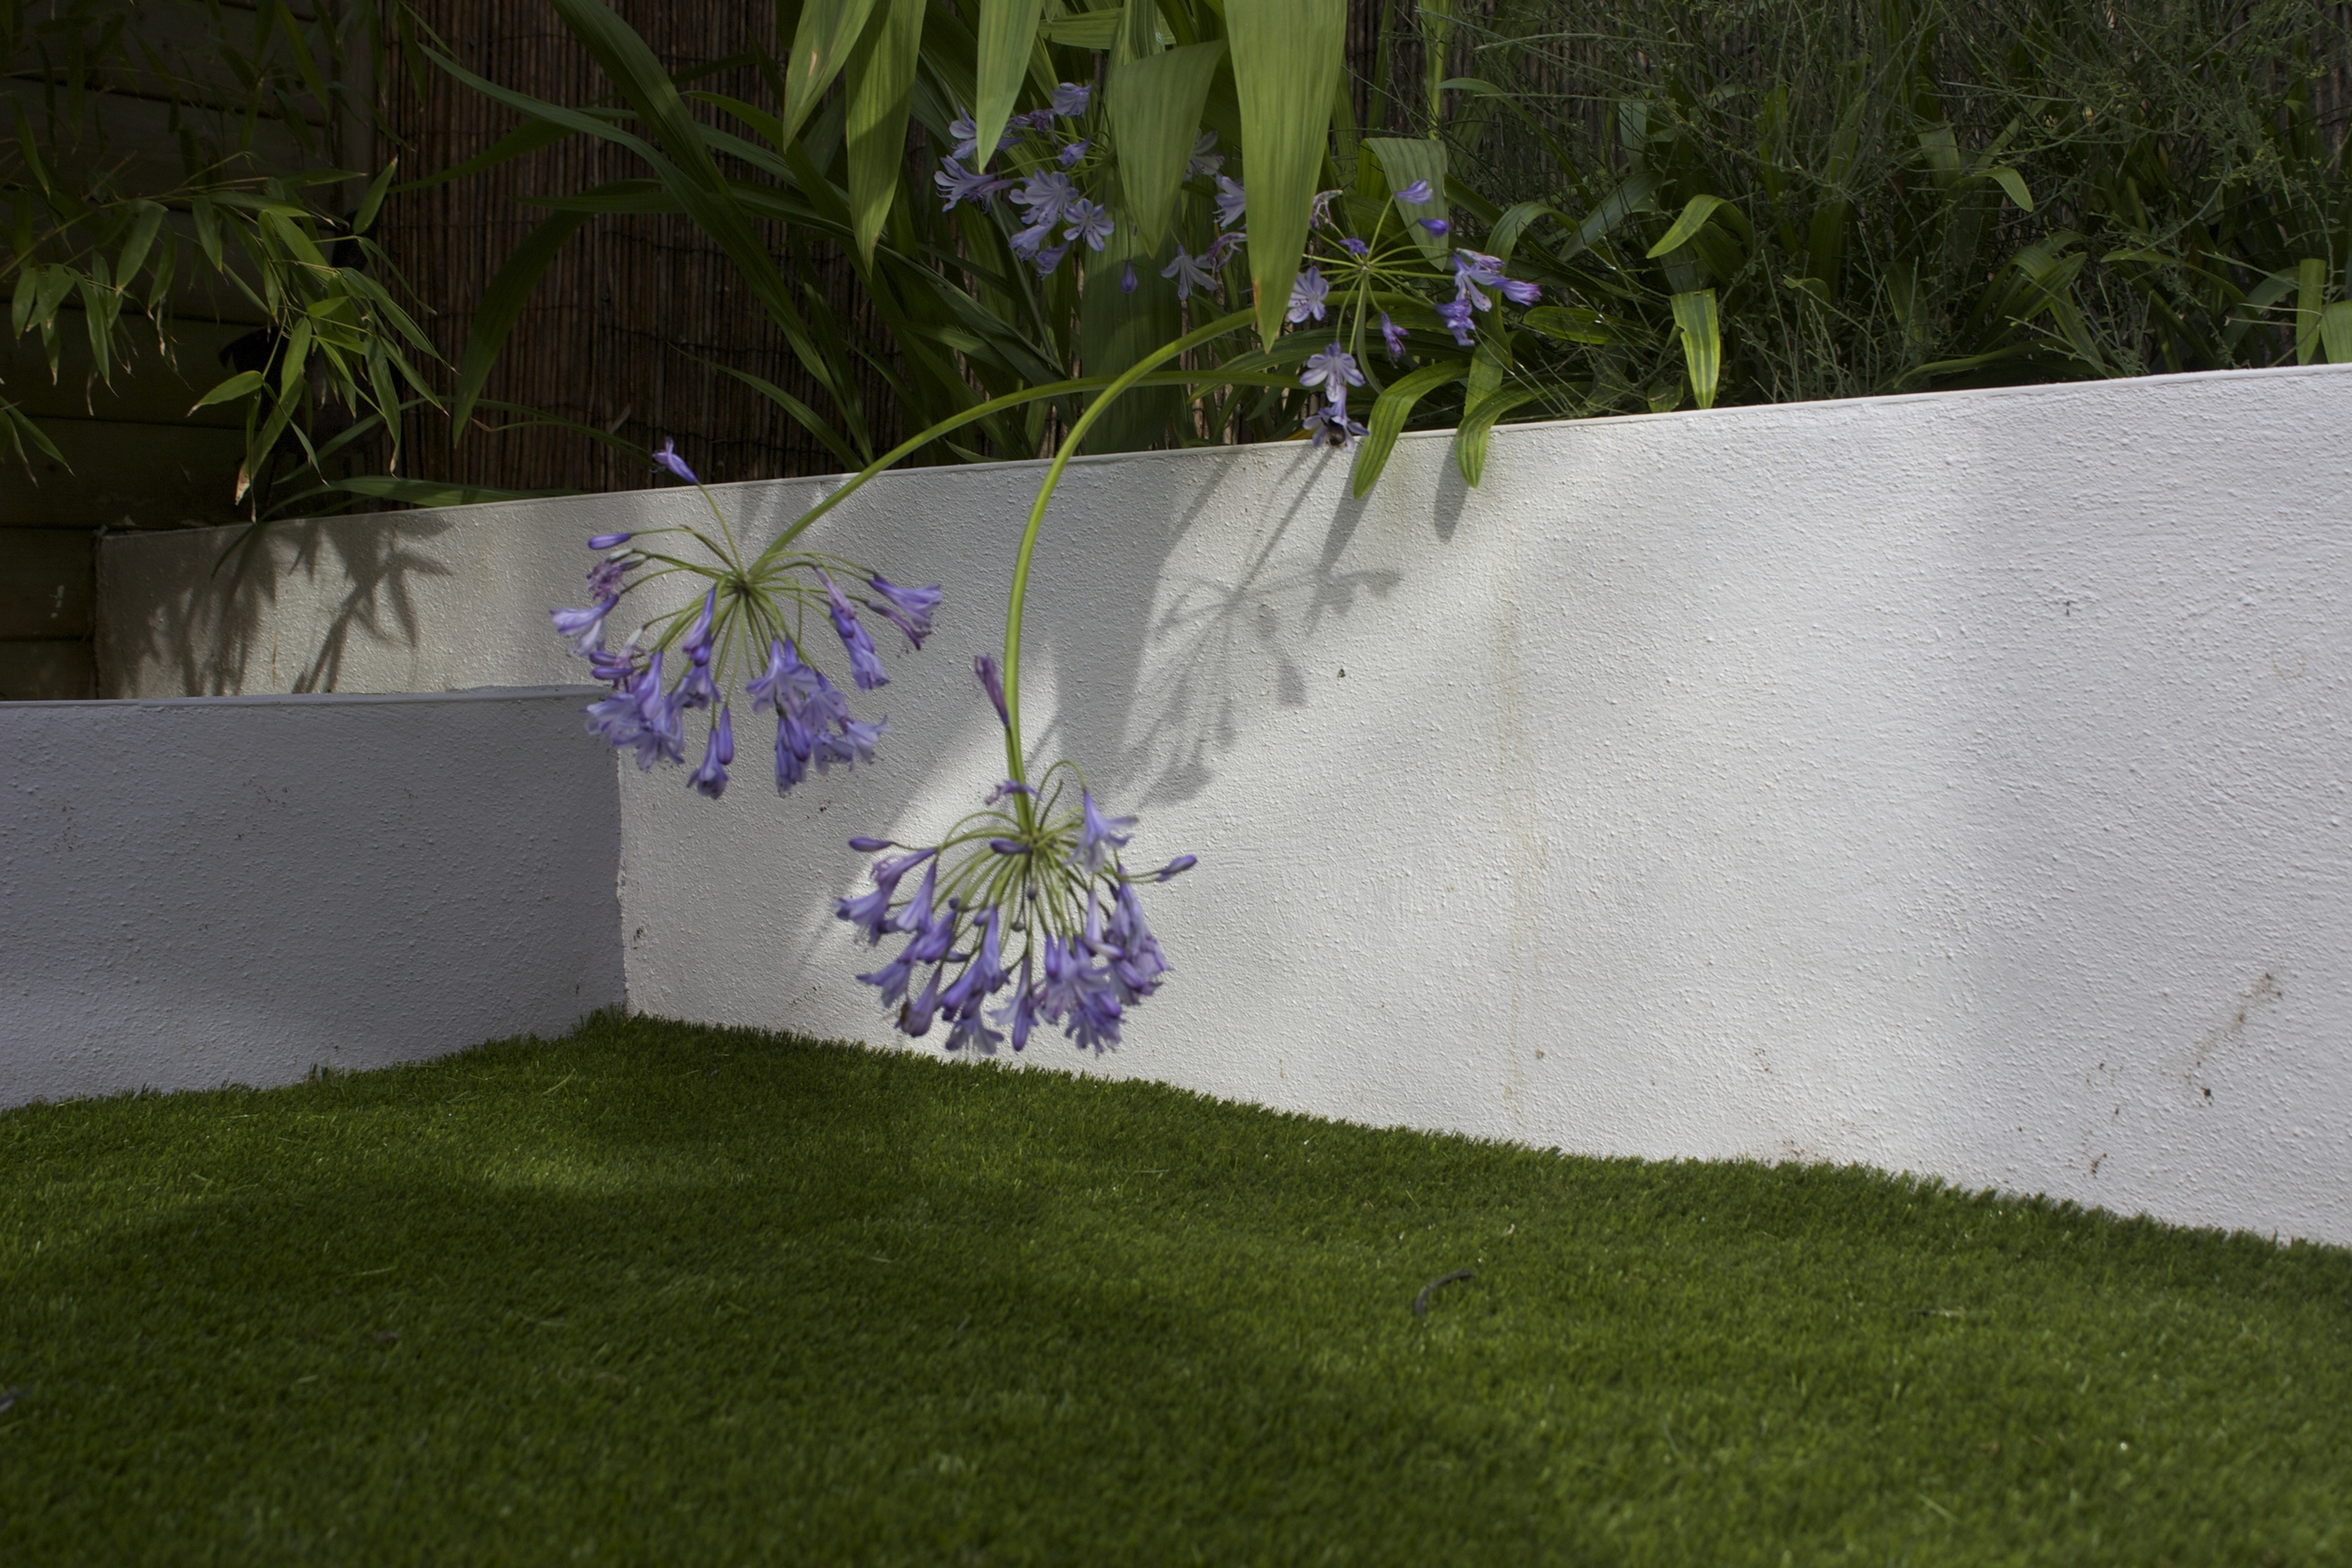 flowers and artificial Lawn